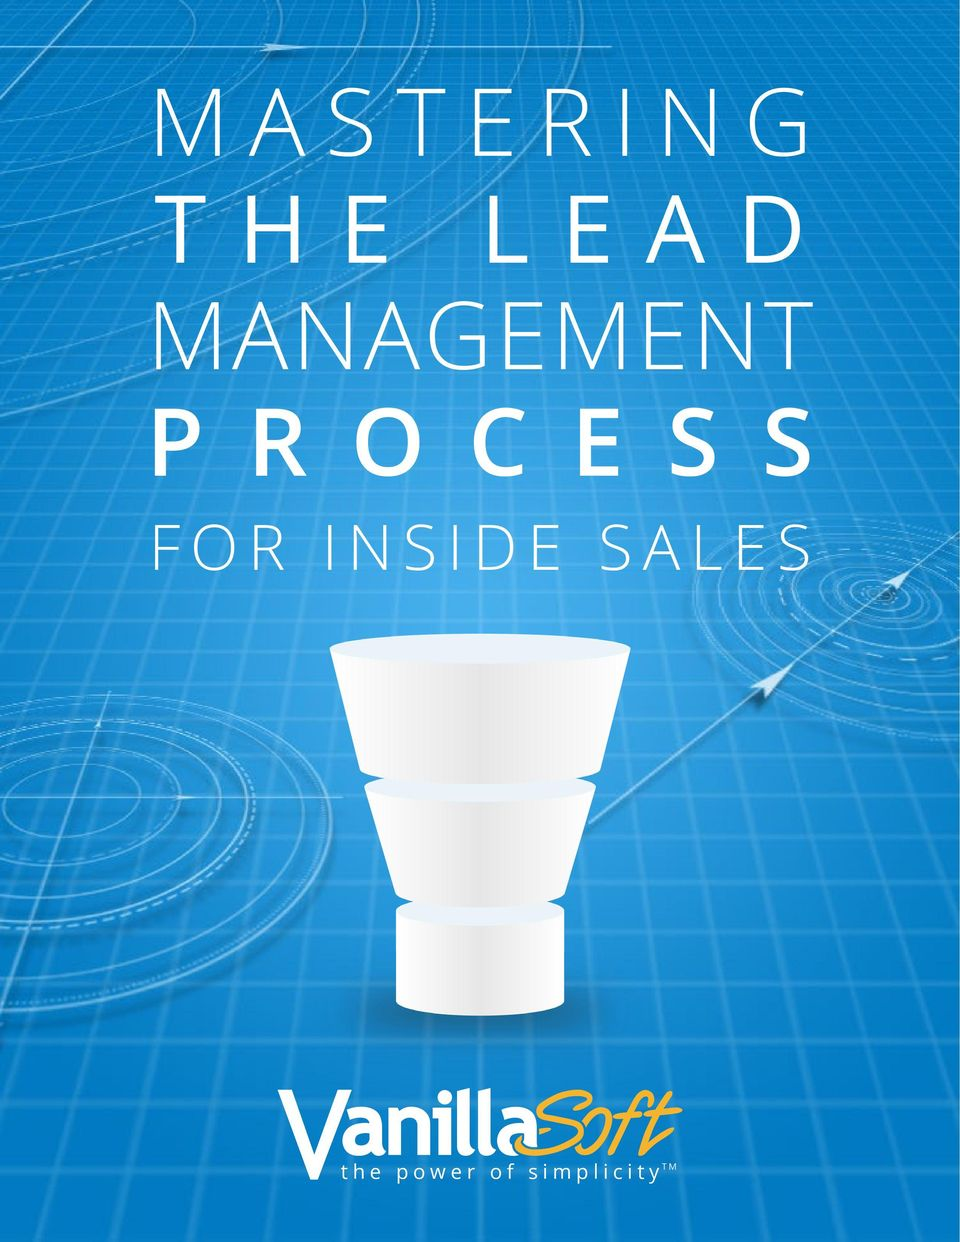 FOR INSIDE SALES the